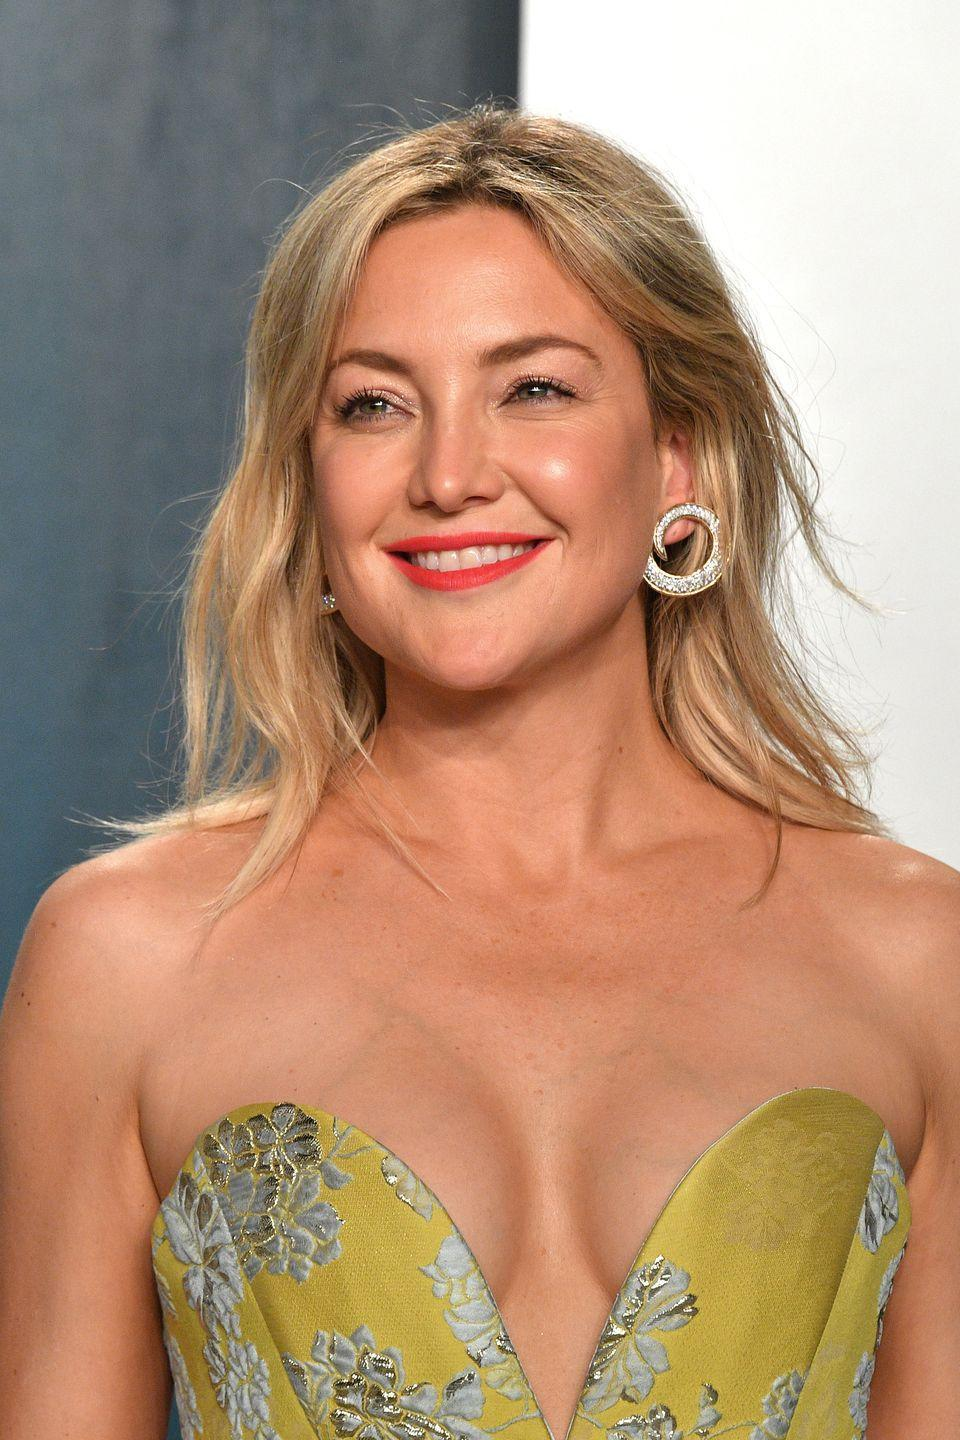 """<p>Kate Hudson sported a set of braces in high school, according to <a href=""""https://www.huffpost.com/entry/kate-hudson-glee-high-school-photo_n_1882473"""" data-ylk=""""slk:this yearbook photo"""" class=""""link rapid-noclick-resp"""">this yearbook photo</a>. No wonder her smile is so radiant!</p>"""